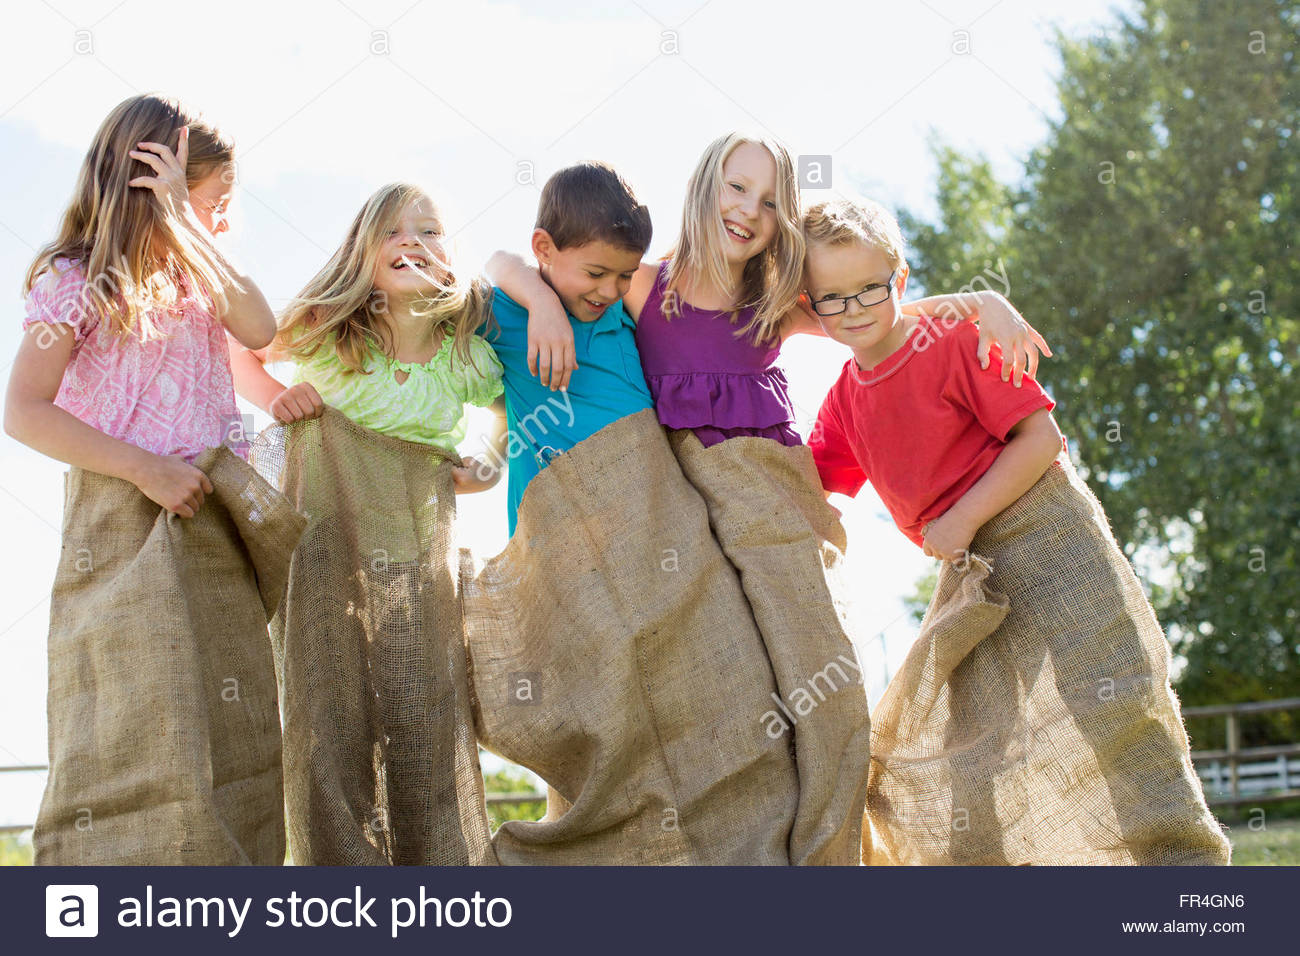 Cousins getting ready for potato sack race. - Stock Image